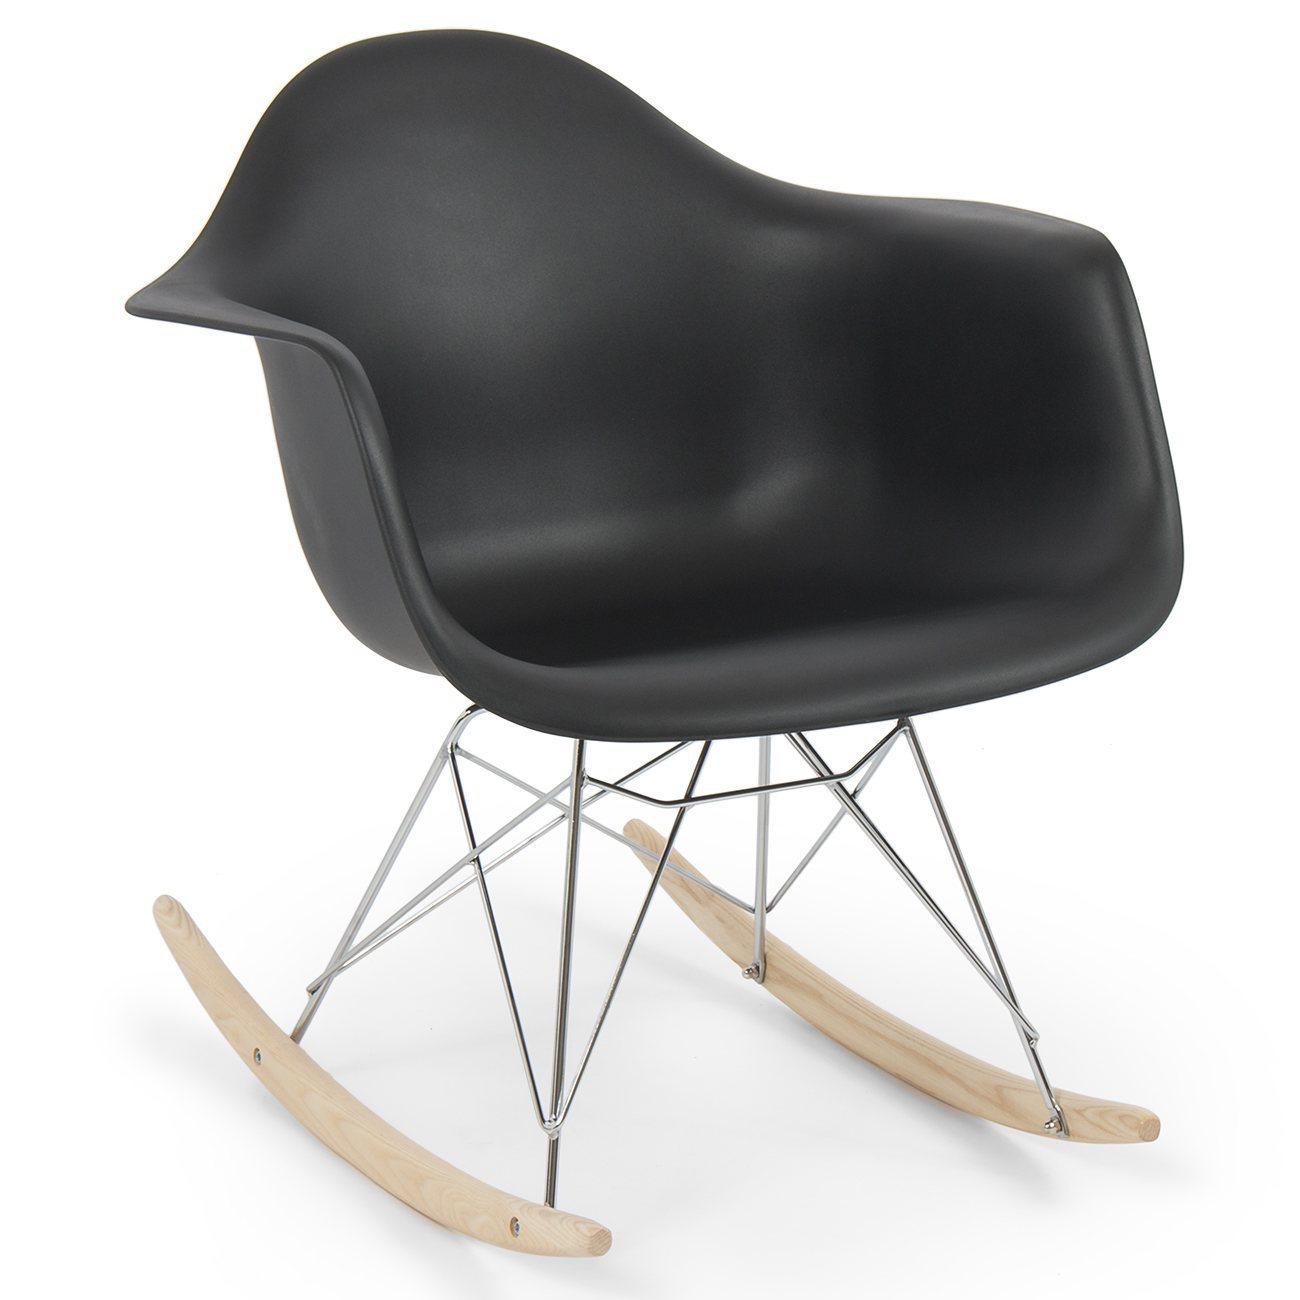 Retro dsw eames style modern arm chair rar rocker rocking for Modern arm chair